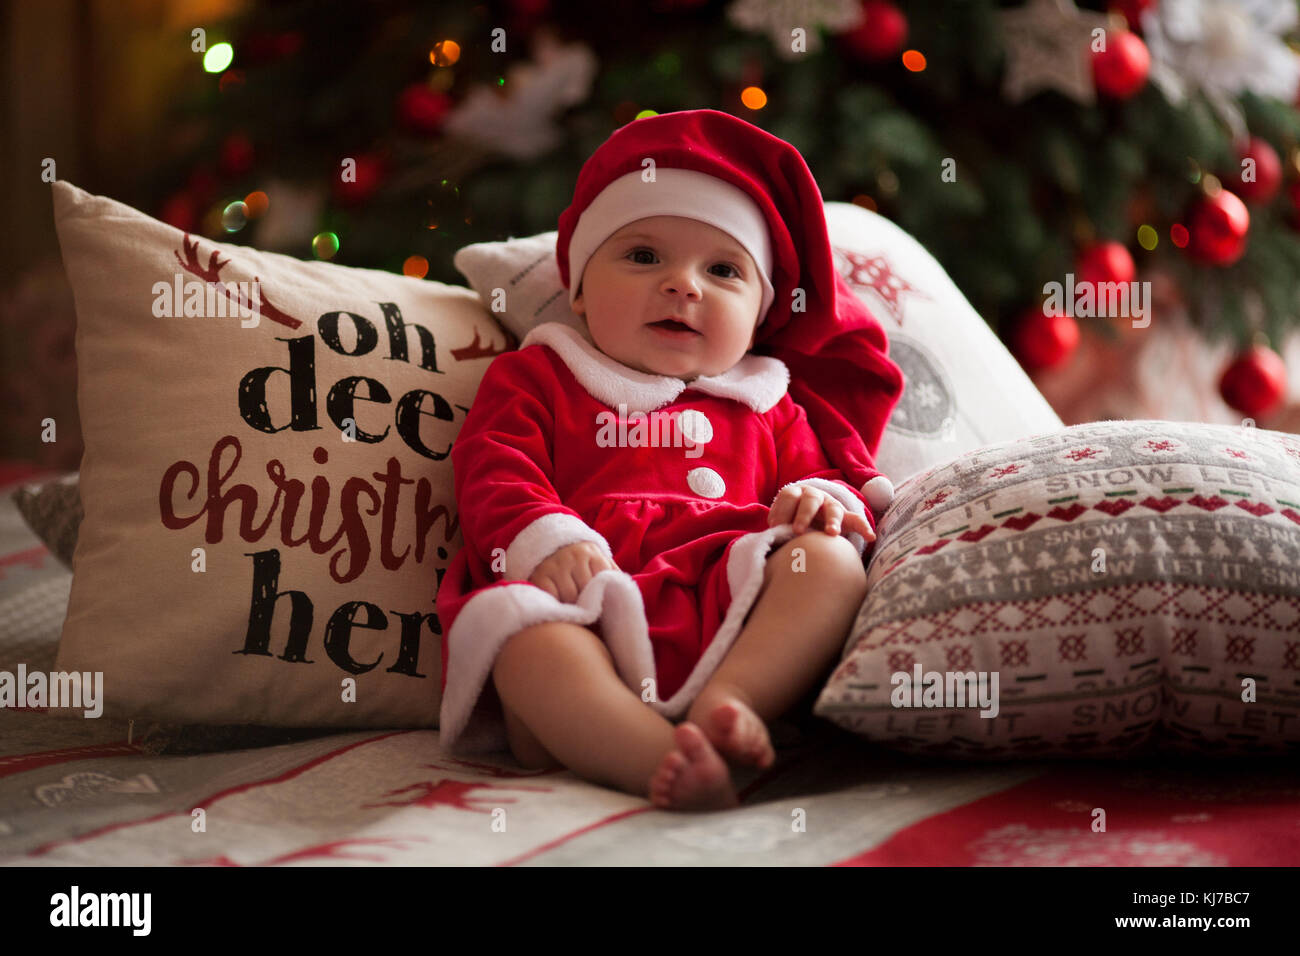 a6bbe0863 Baby girl in Santa Claus costume and hat smiles and sits barefoot on bed  among pillows